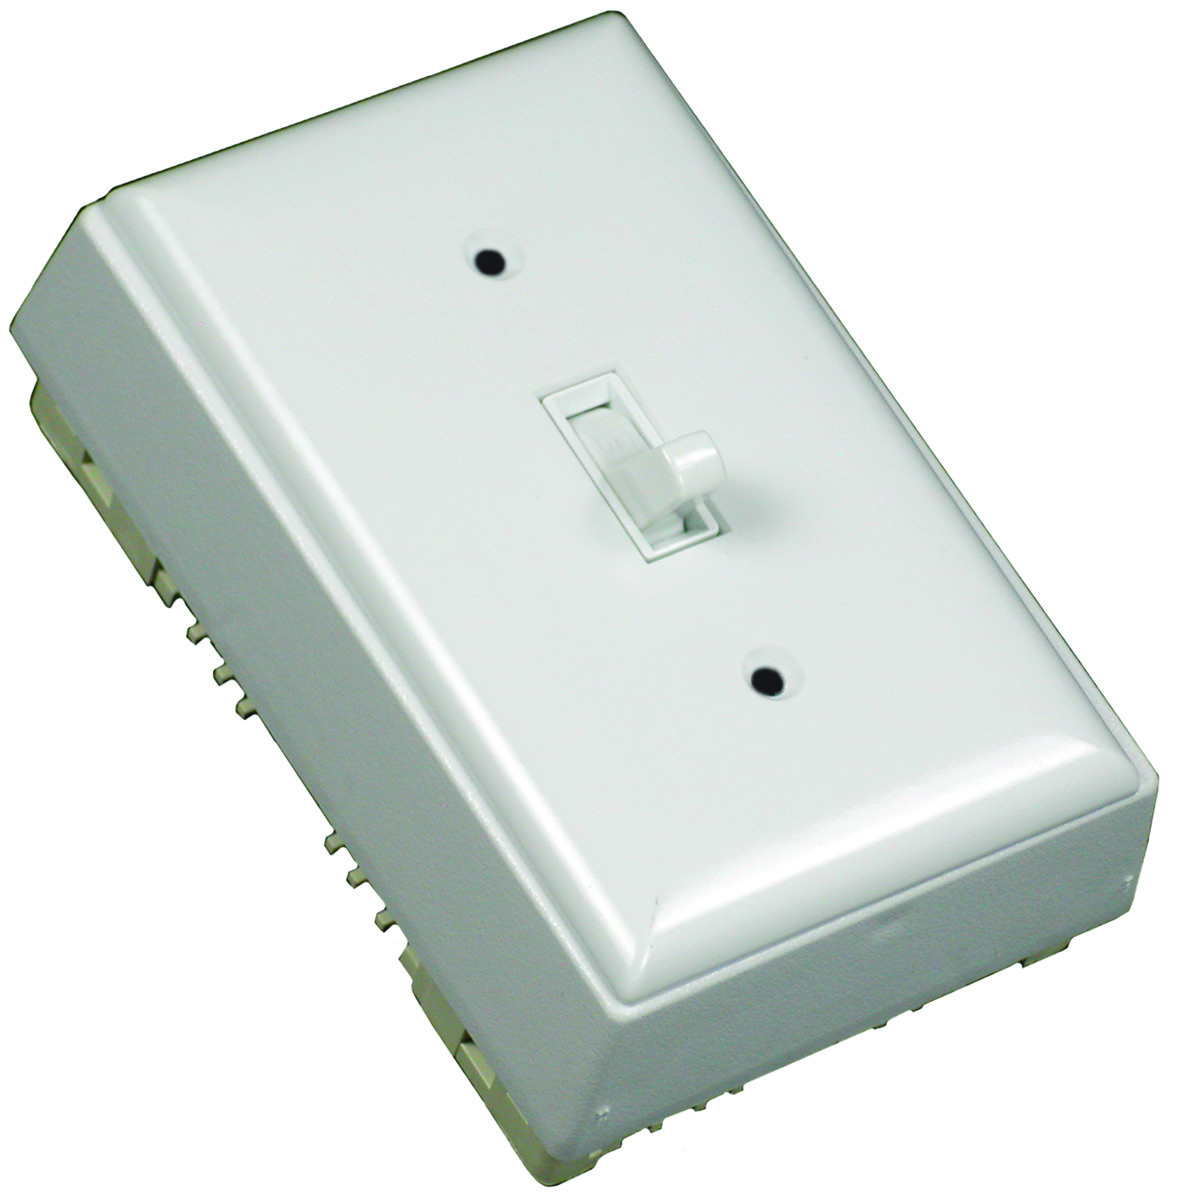 Wiremold Nmw2s Outlet Box Sgl Switch Wh 086698000201 1 And In The Same Tap To Expand